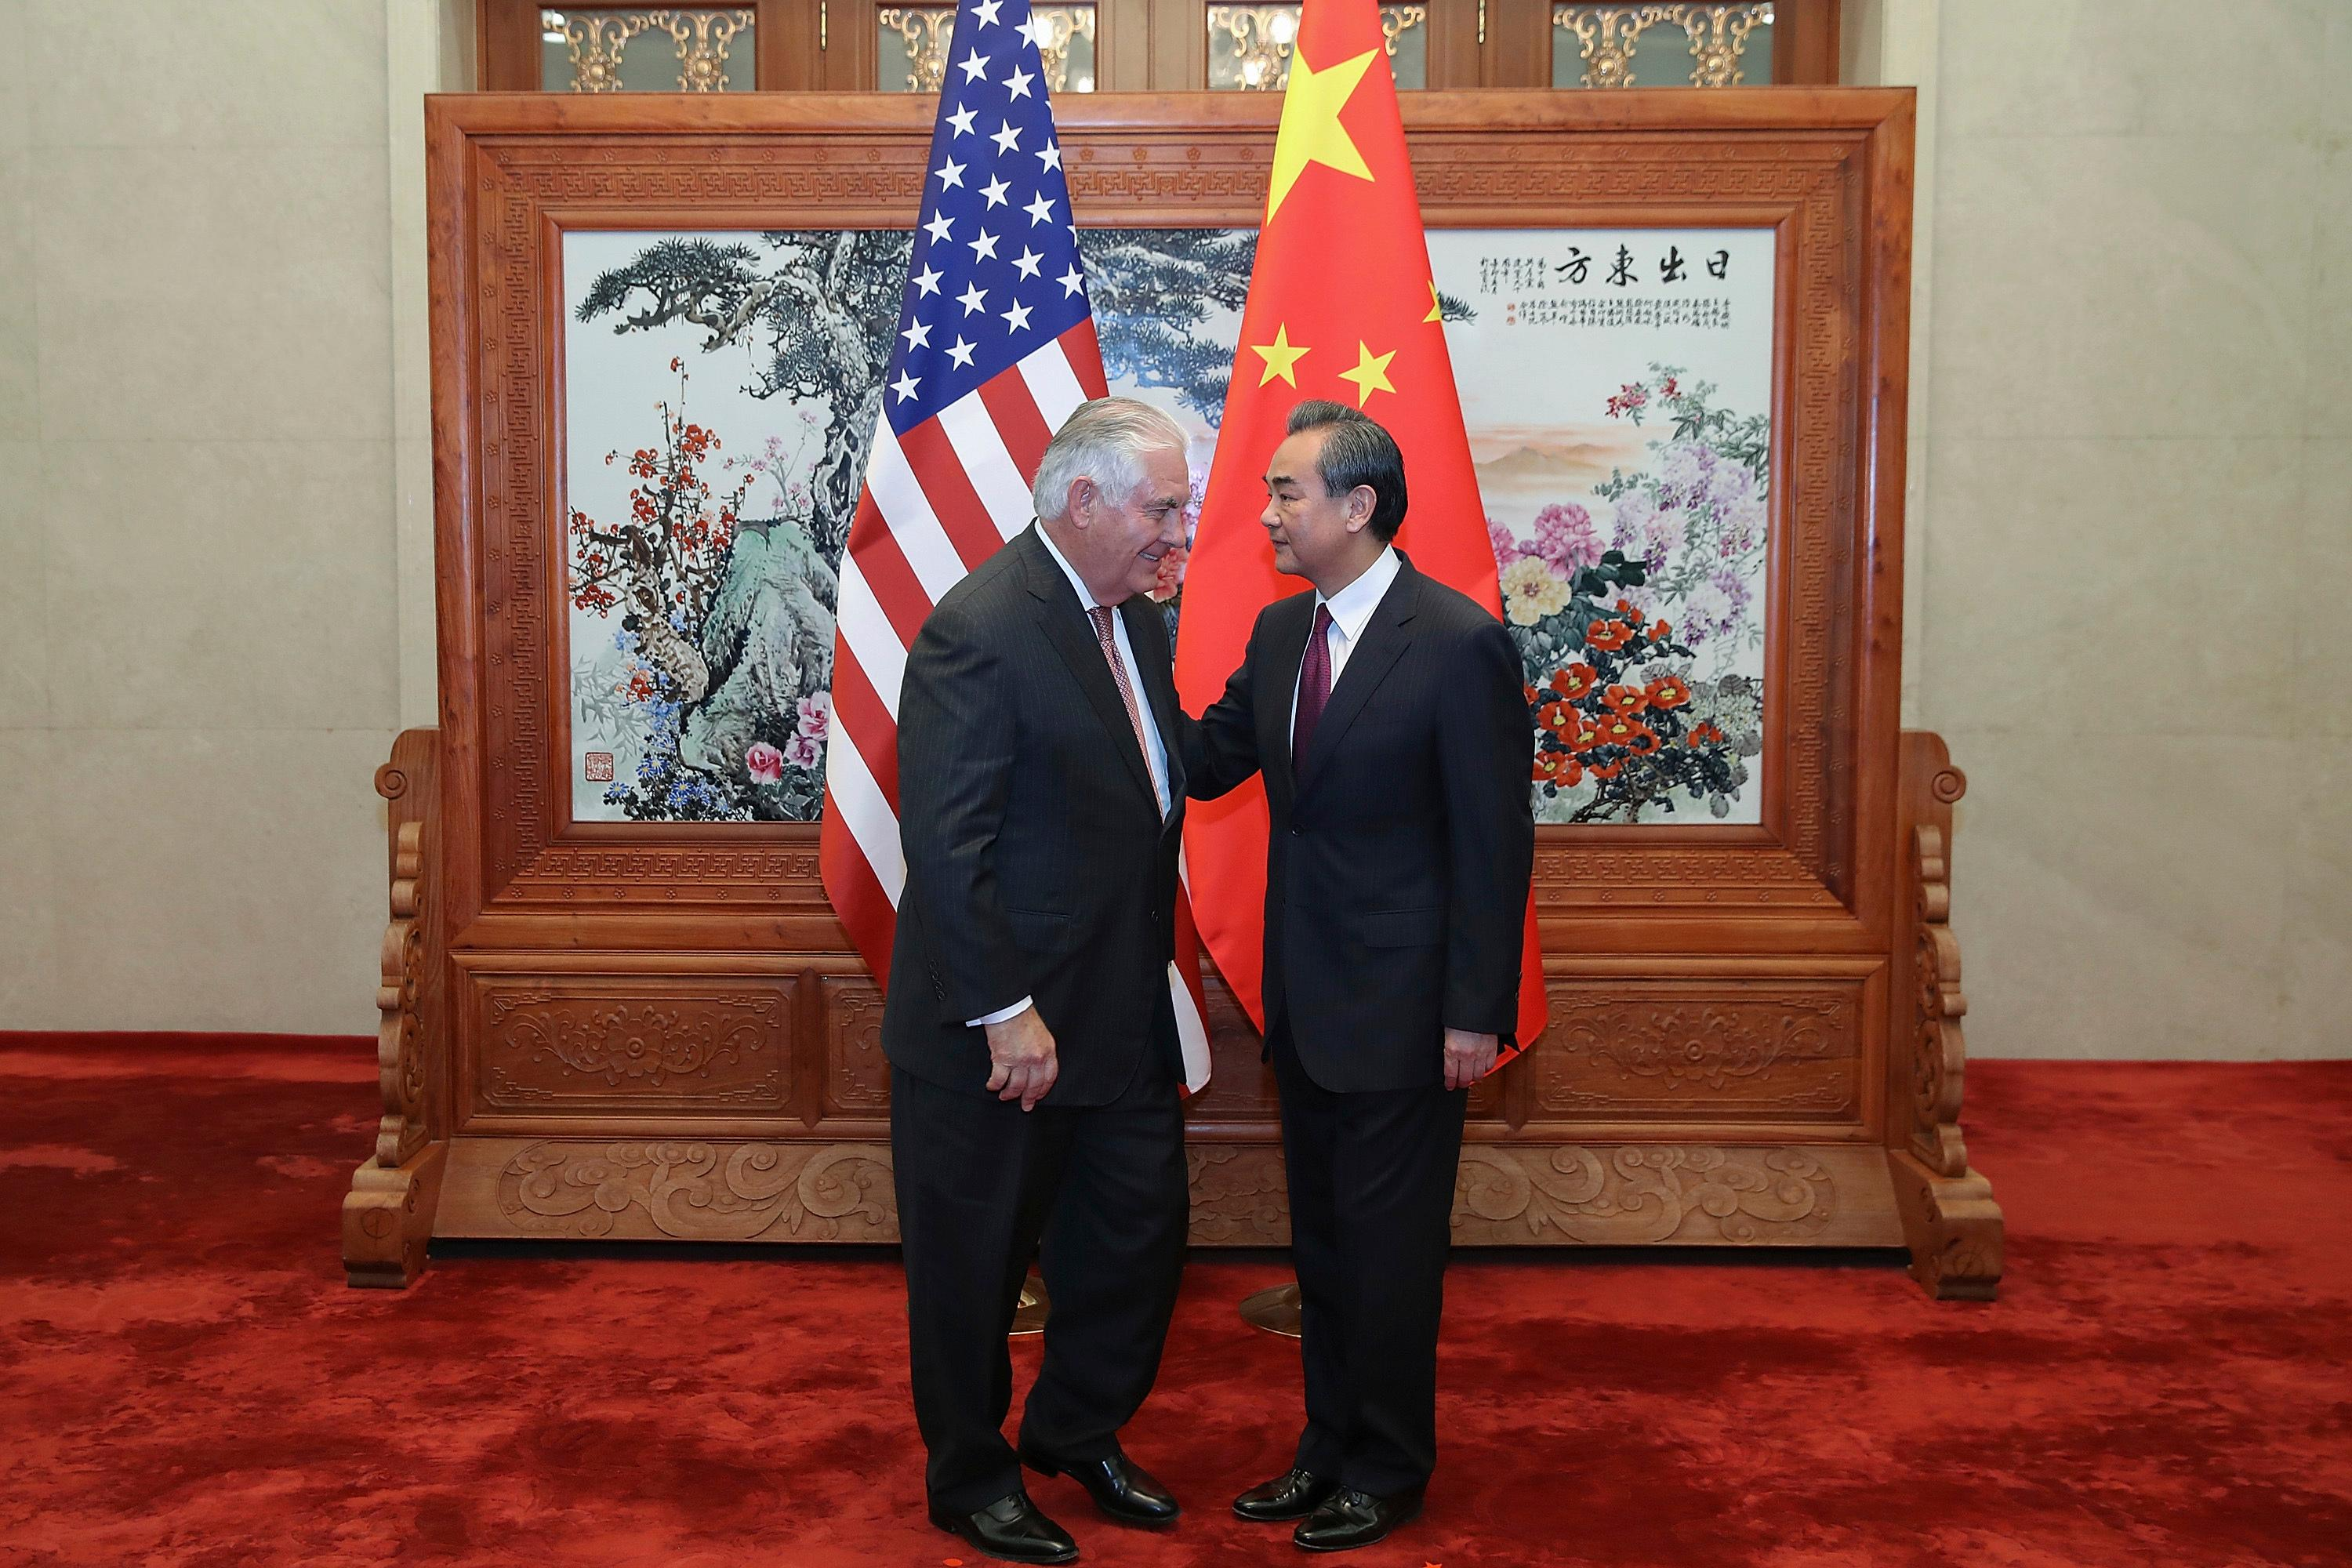 U.S. Secretary of State Rex Tillerson, left,  meets with Chinese Foreign Minister Wang Yi before their talks at the Great Hall of the People in Beijing Saturday, Sept. 30, 2017. (Lintao Zhang/Pool Photo via AP)